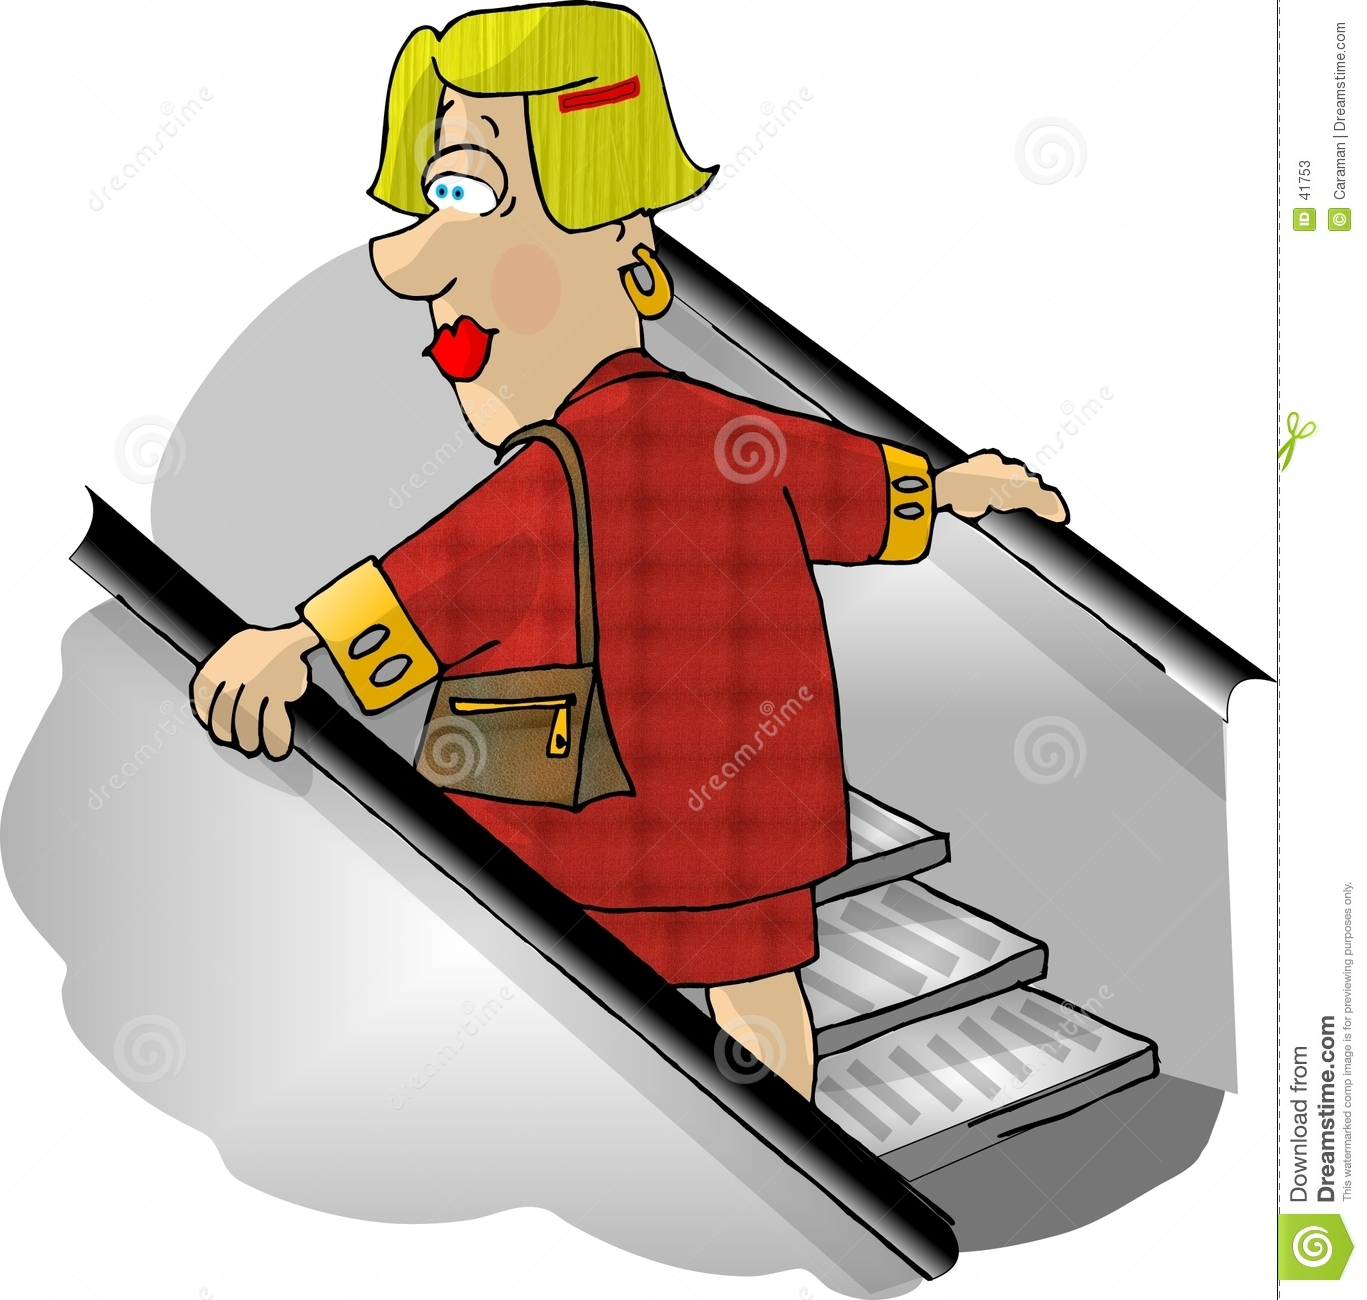 Woman on a department store escalator